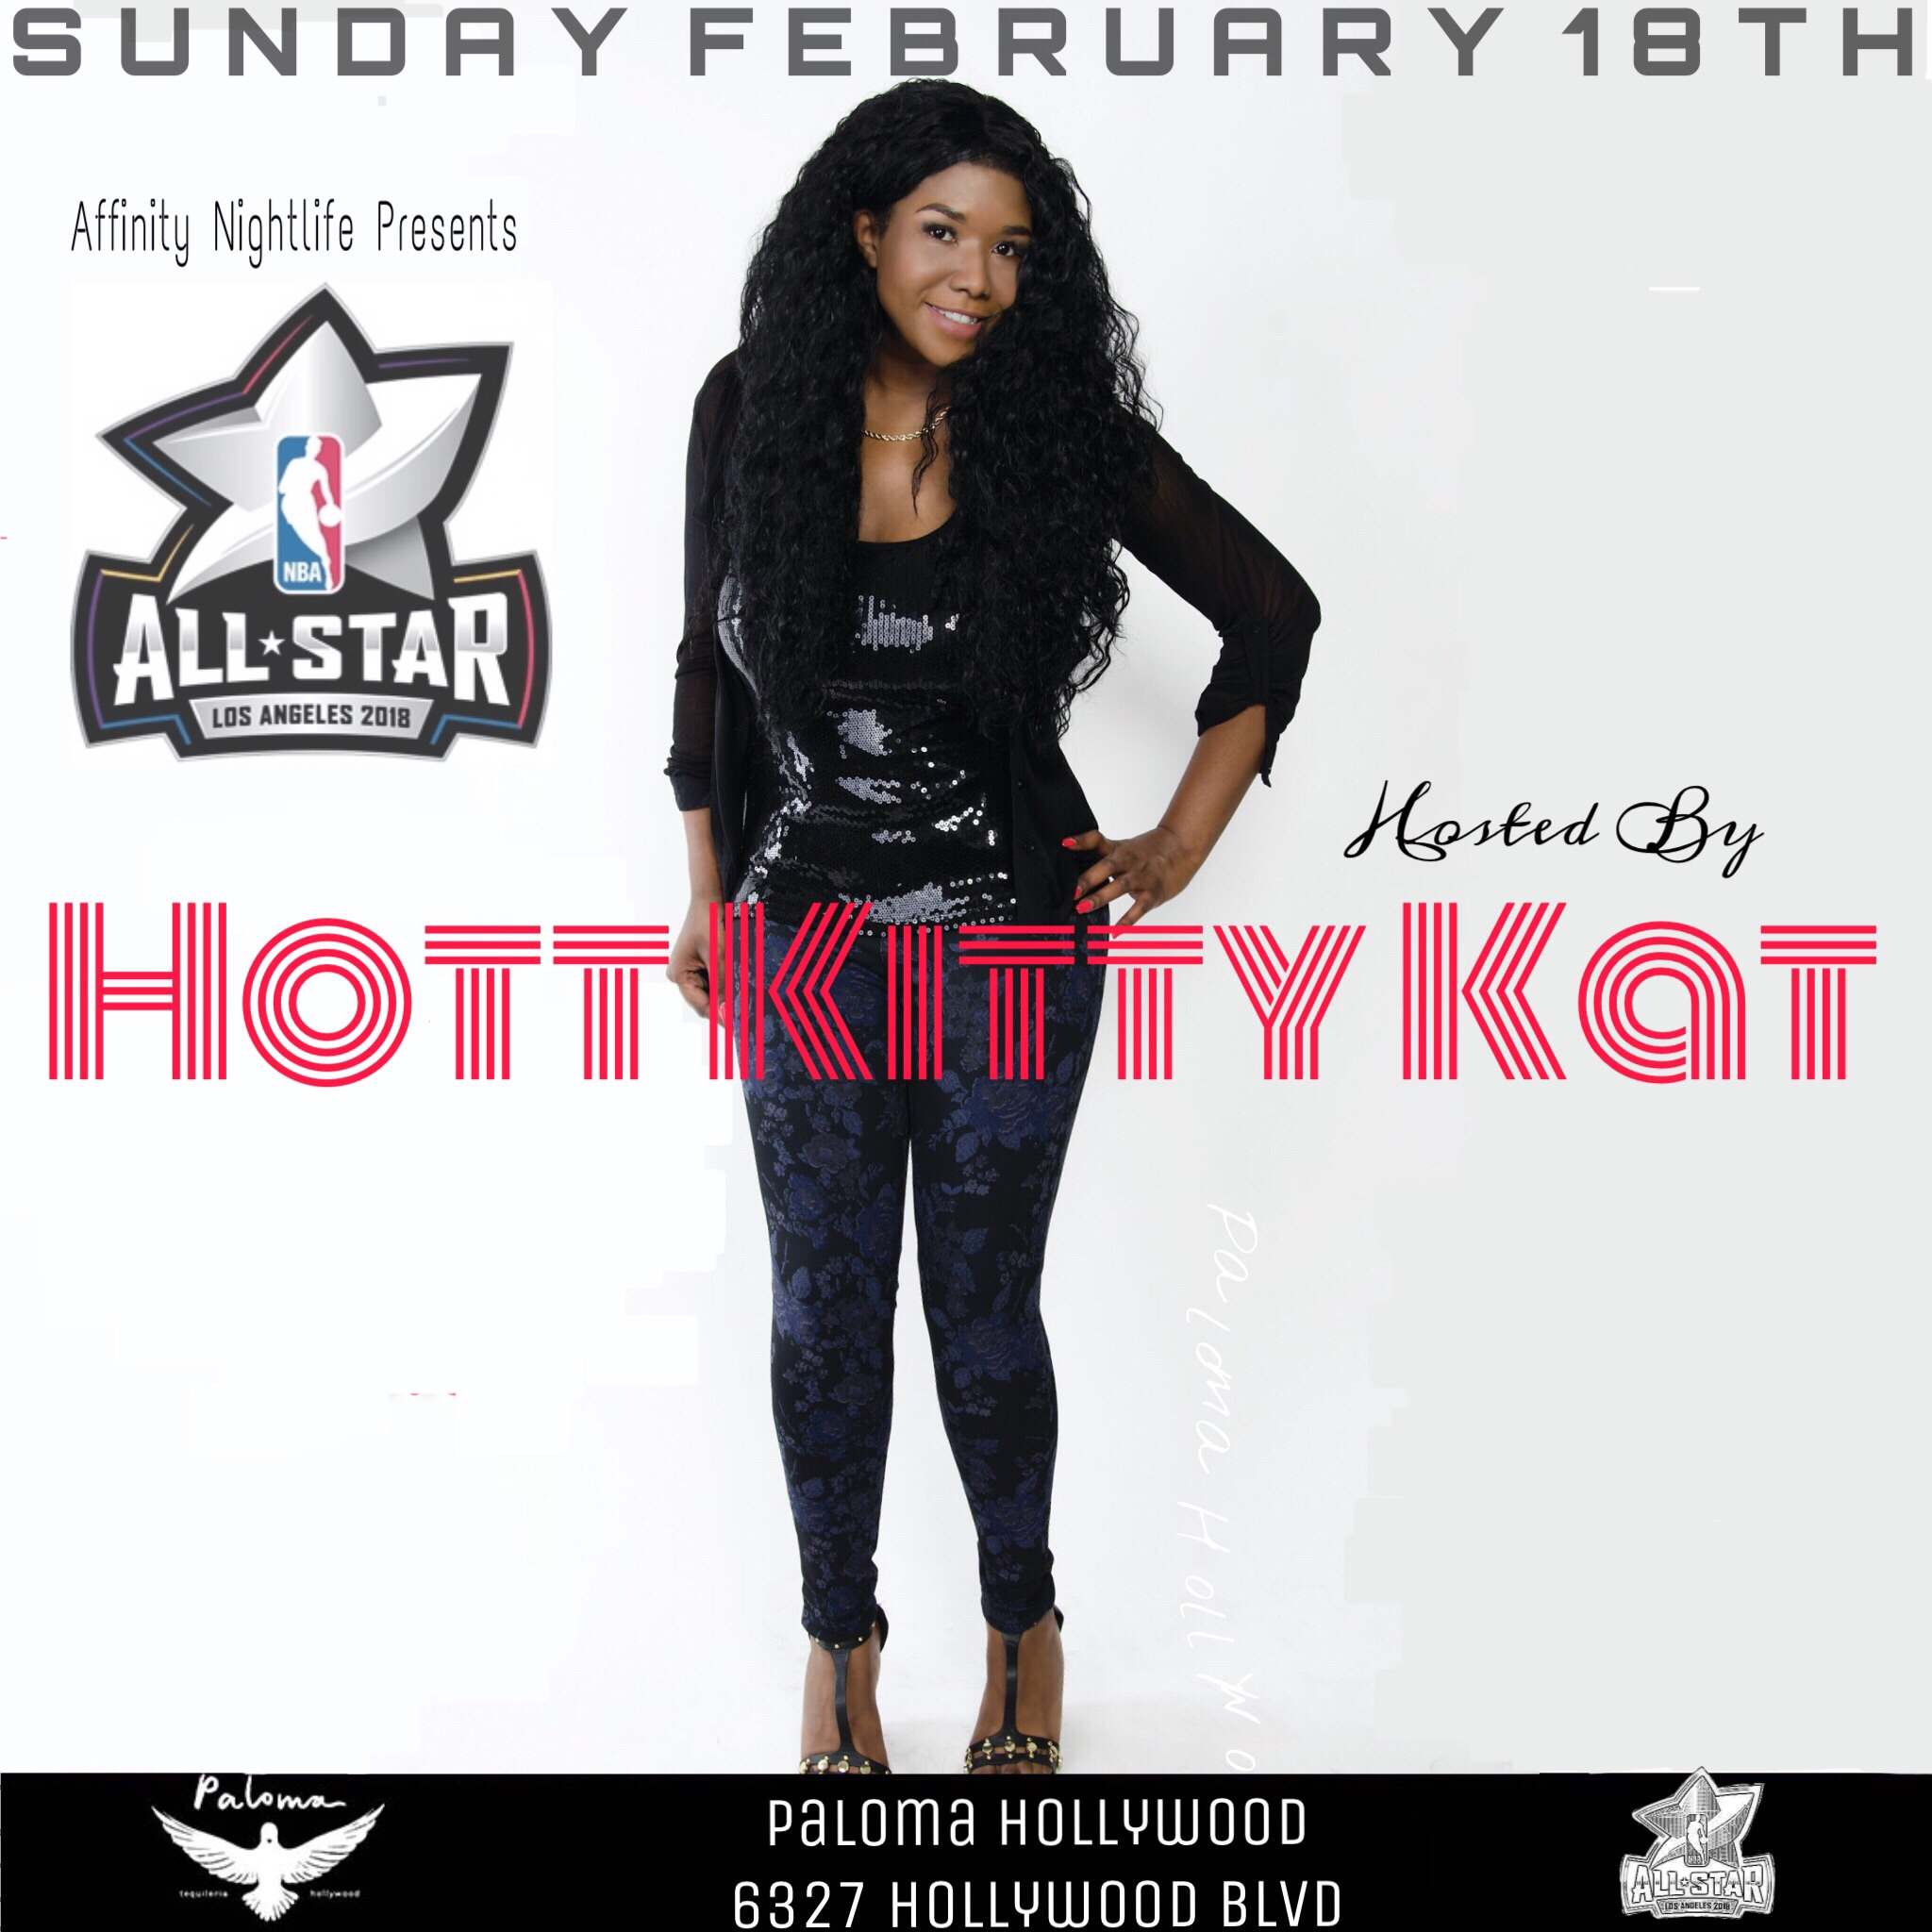 Allstar Event By our Staff Hott Kitt